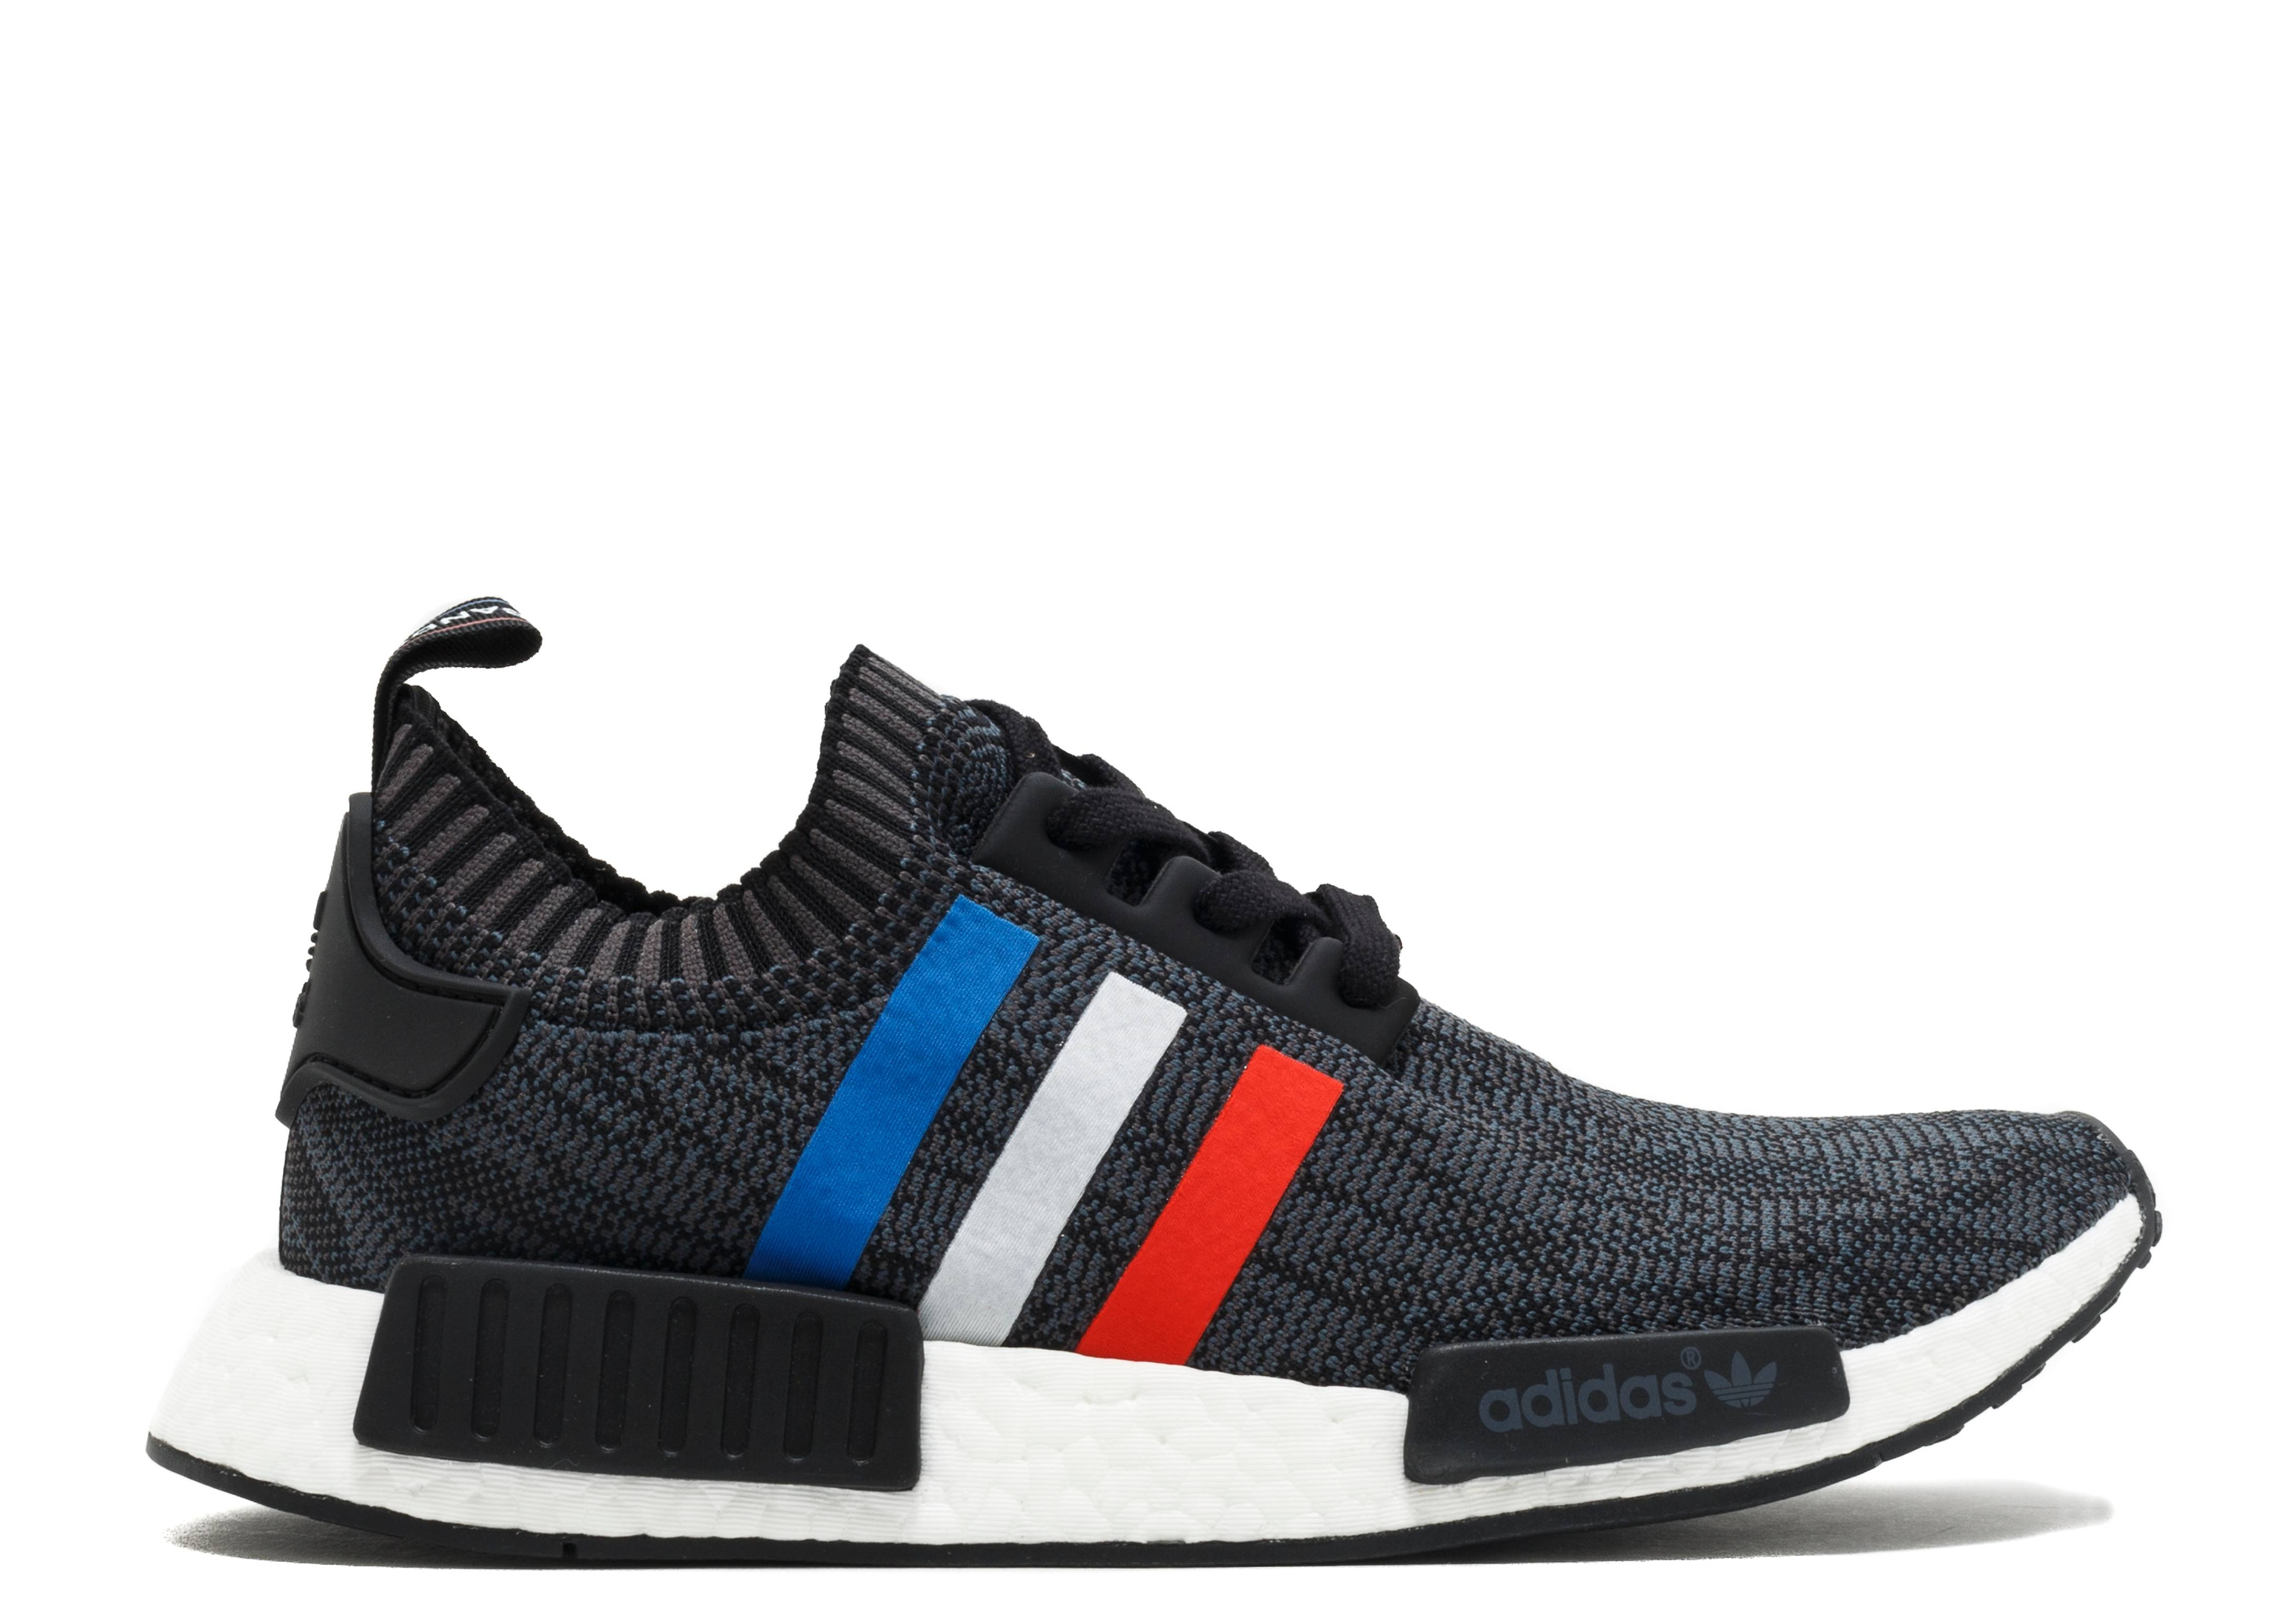 Adidas NMD R1 'Tri Color' Pack Drops on December 26